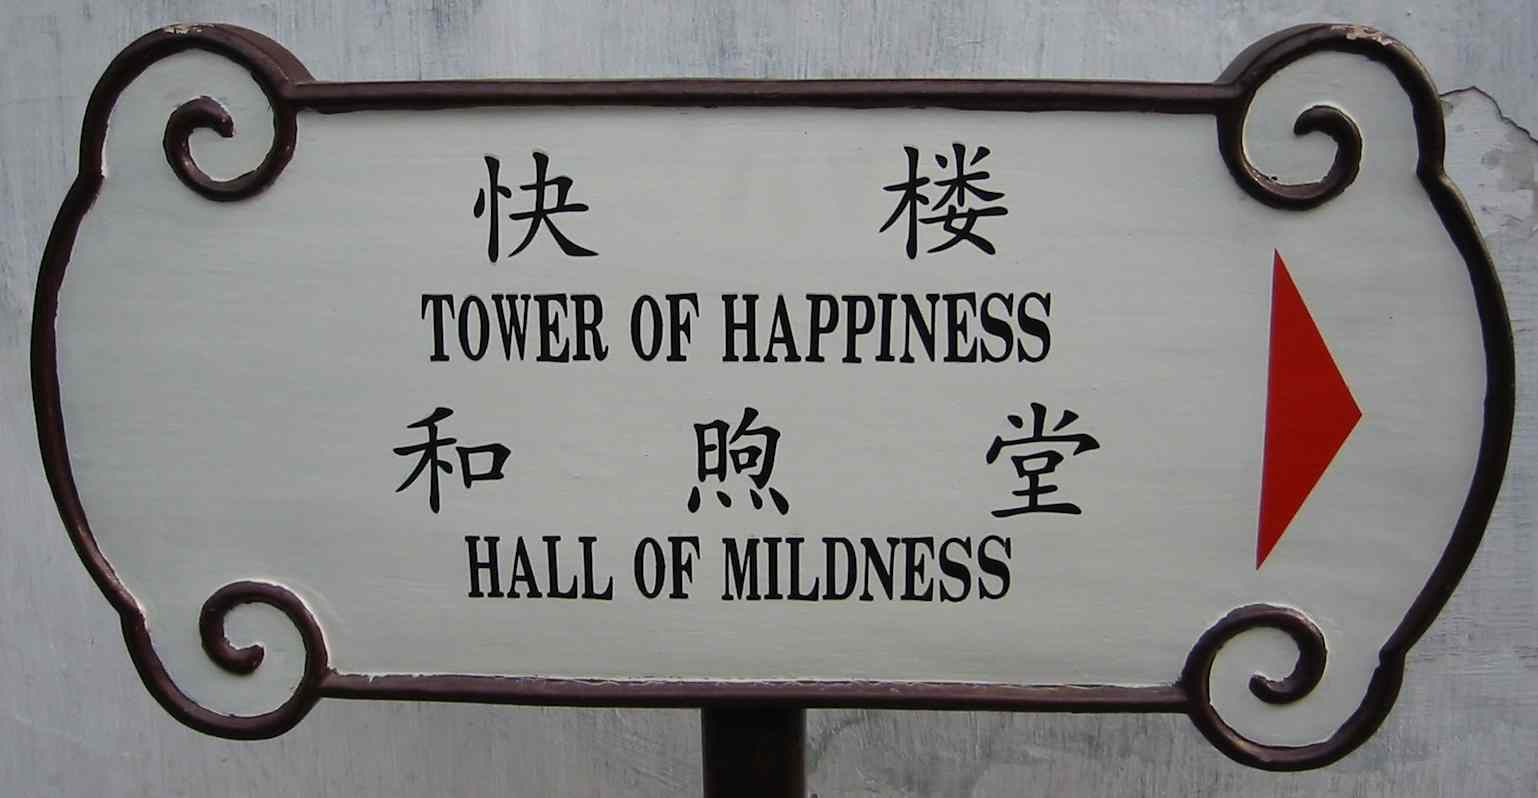 Tower of Happiness